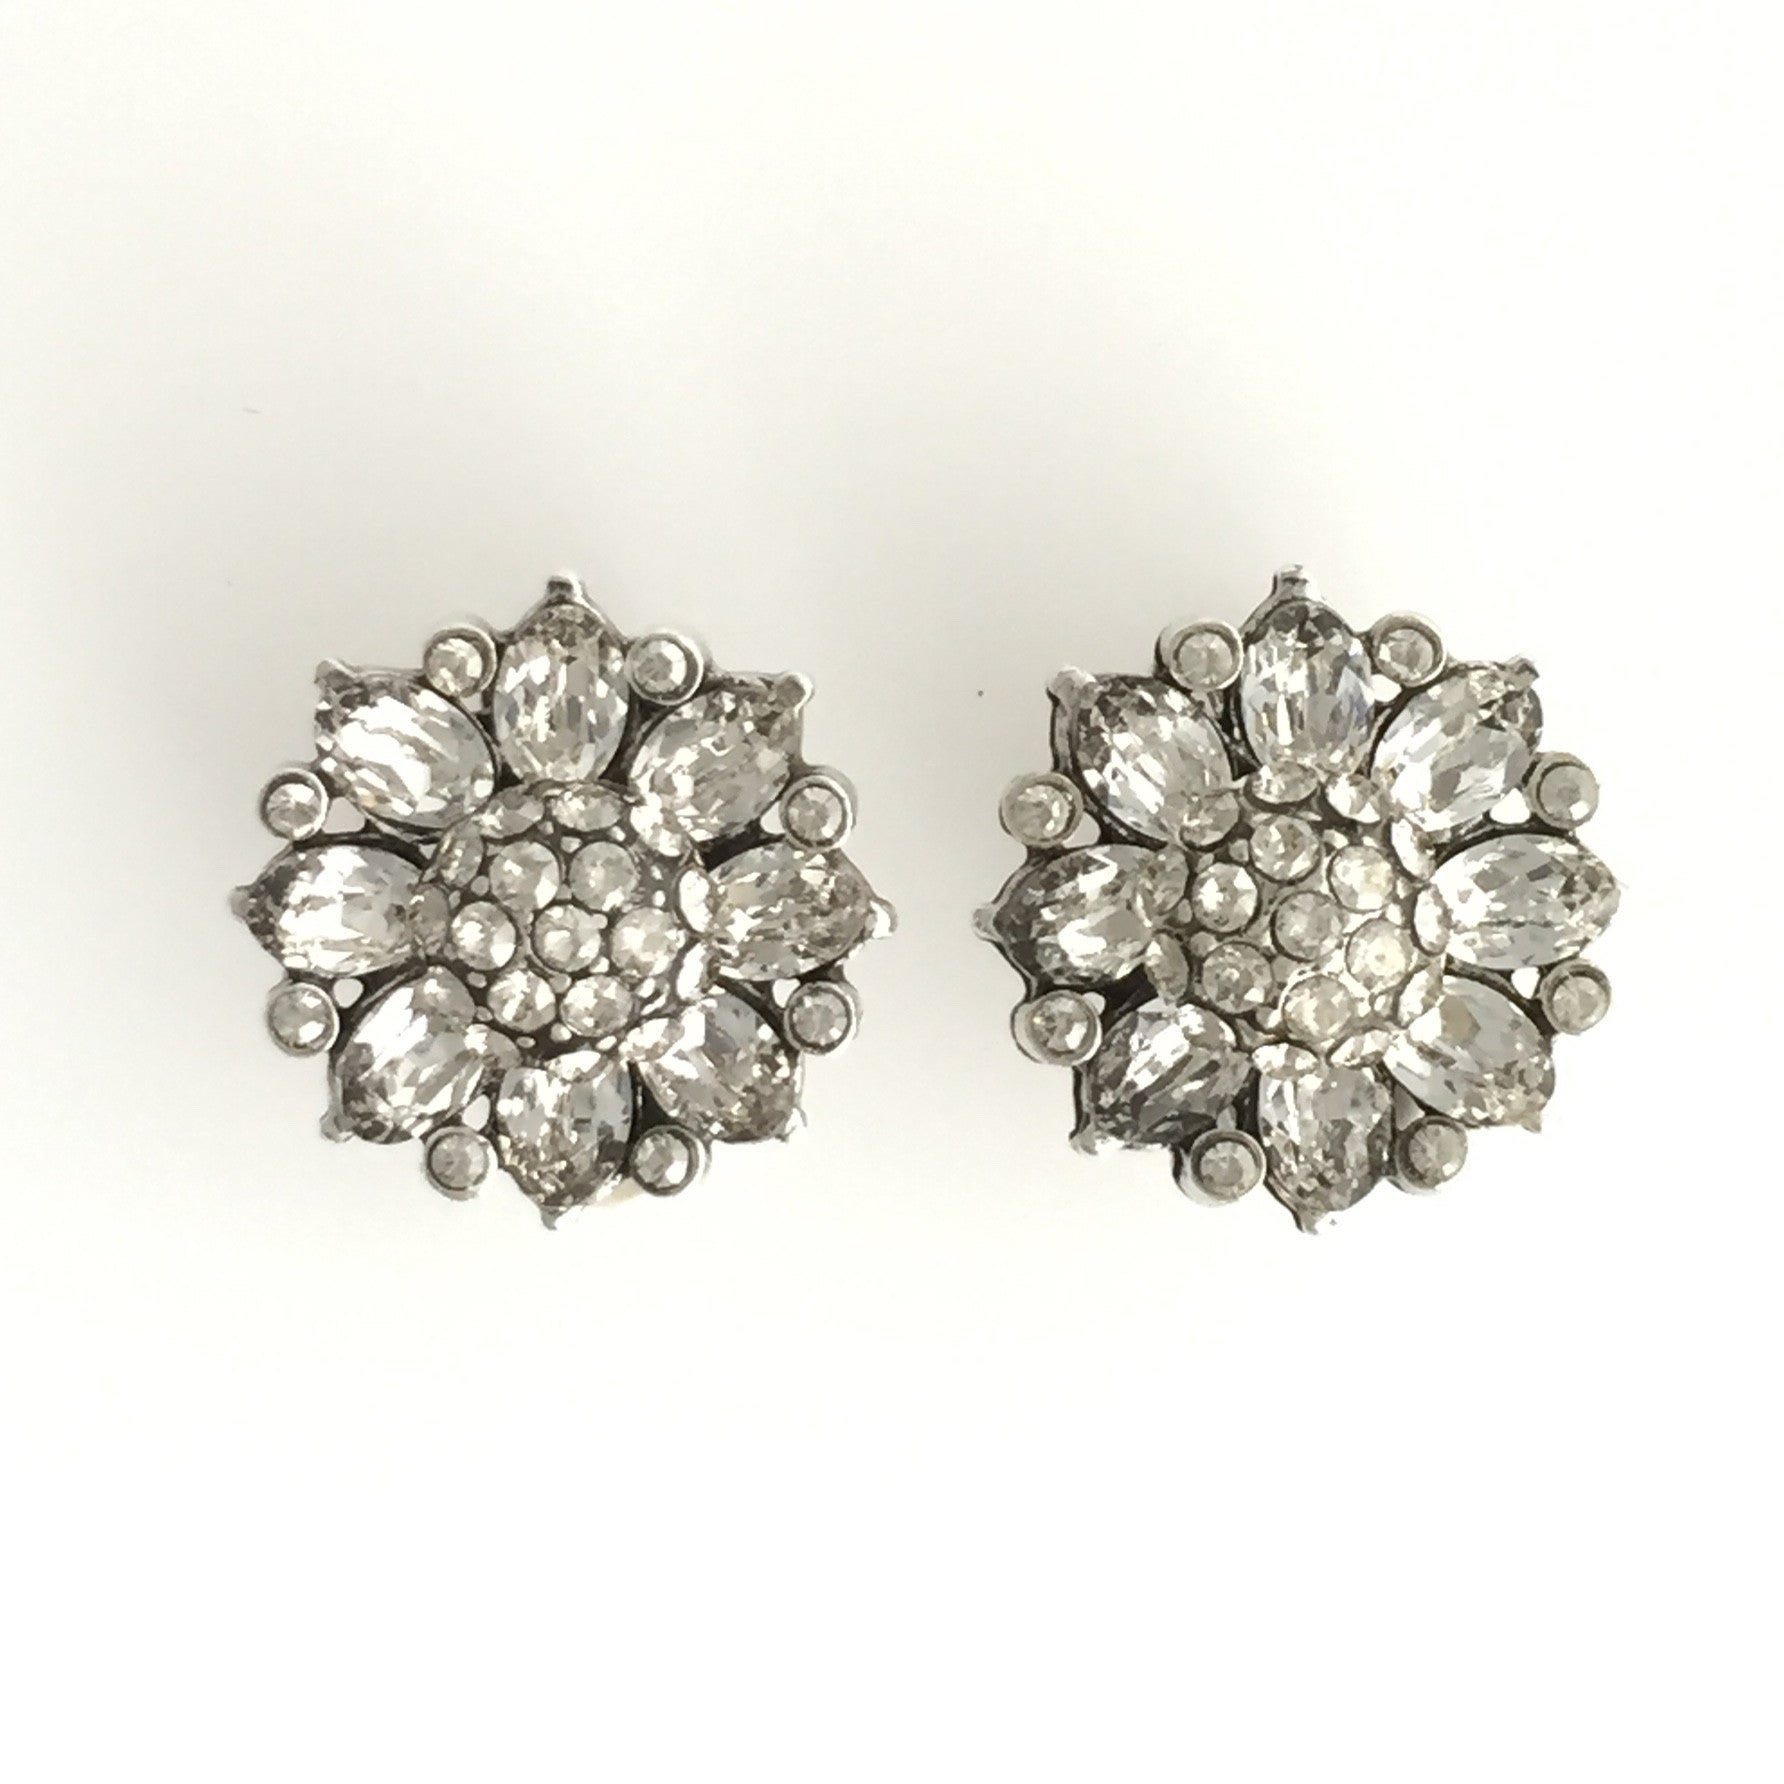 Berlin Bridal Earrings - Earrings - Glamour Stud - Roman & French